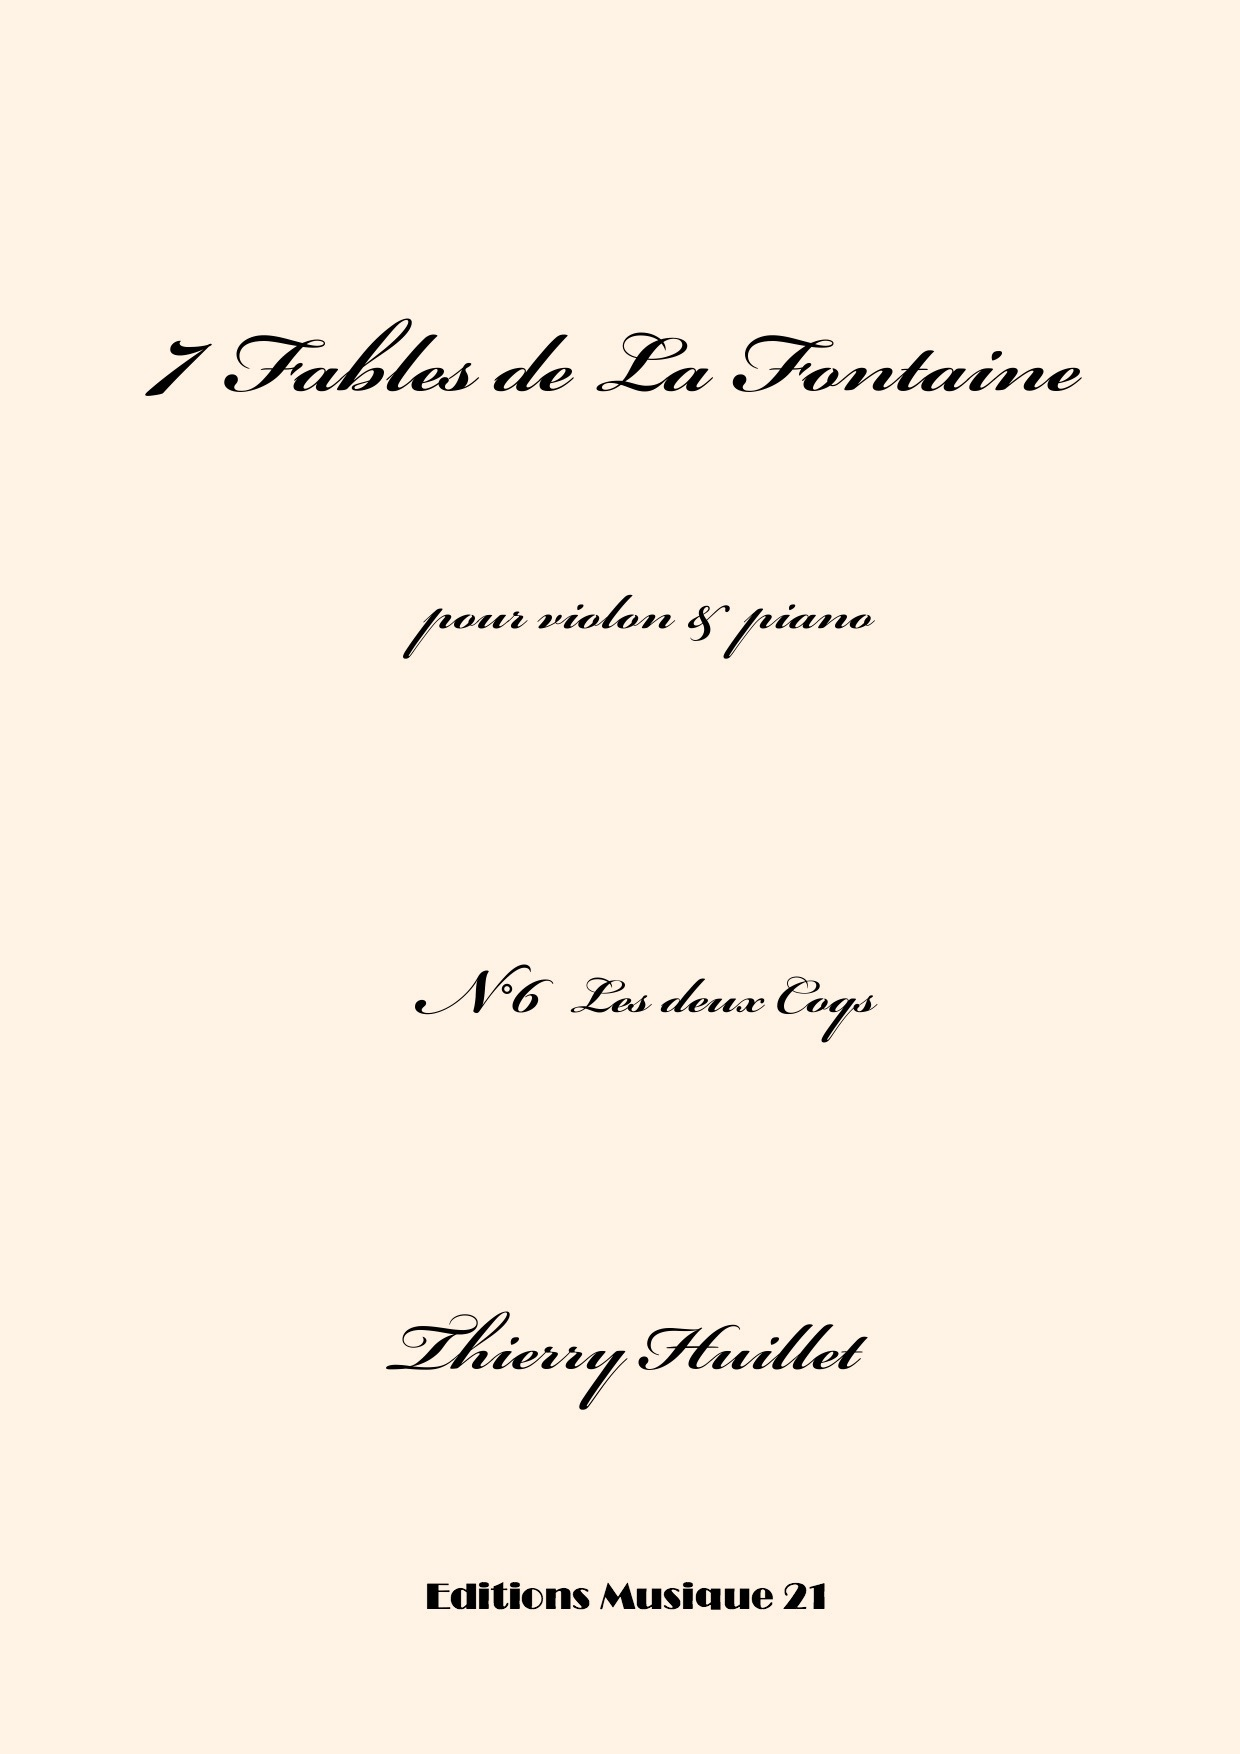 Thierry HUILLET – Les Deux Coqs, N°6 From 7 Fables De La Fontaine, For Violin And Piano